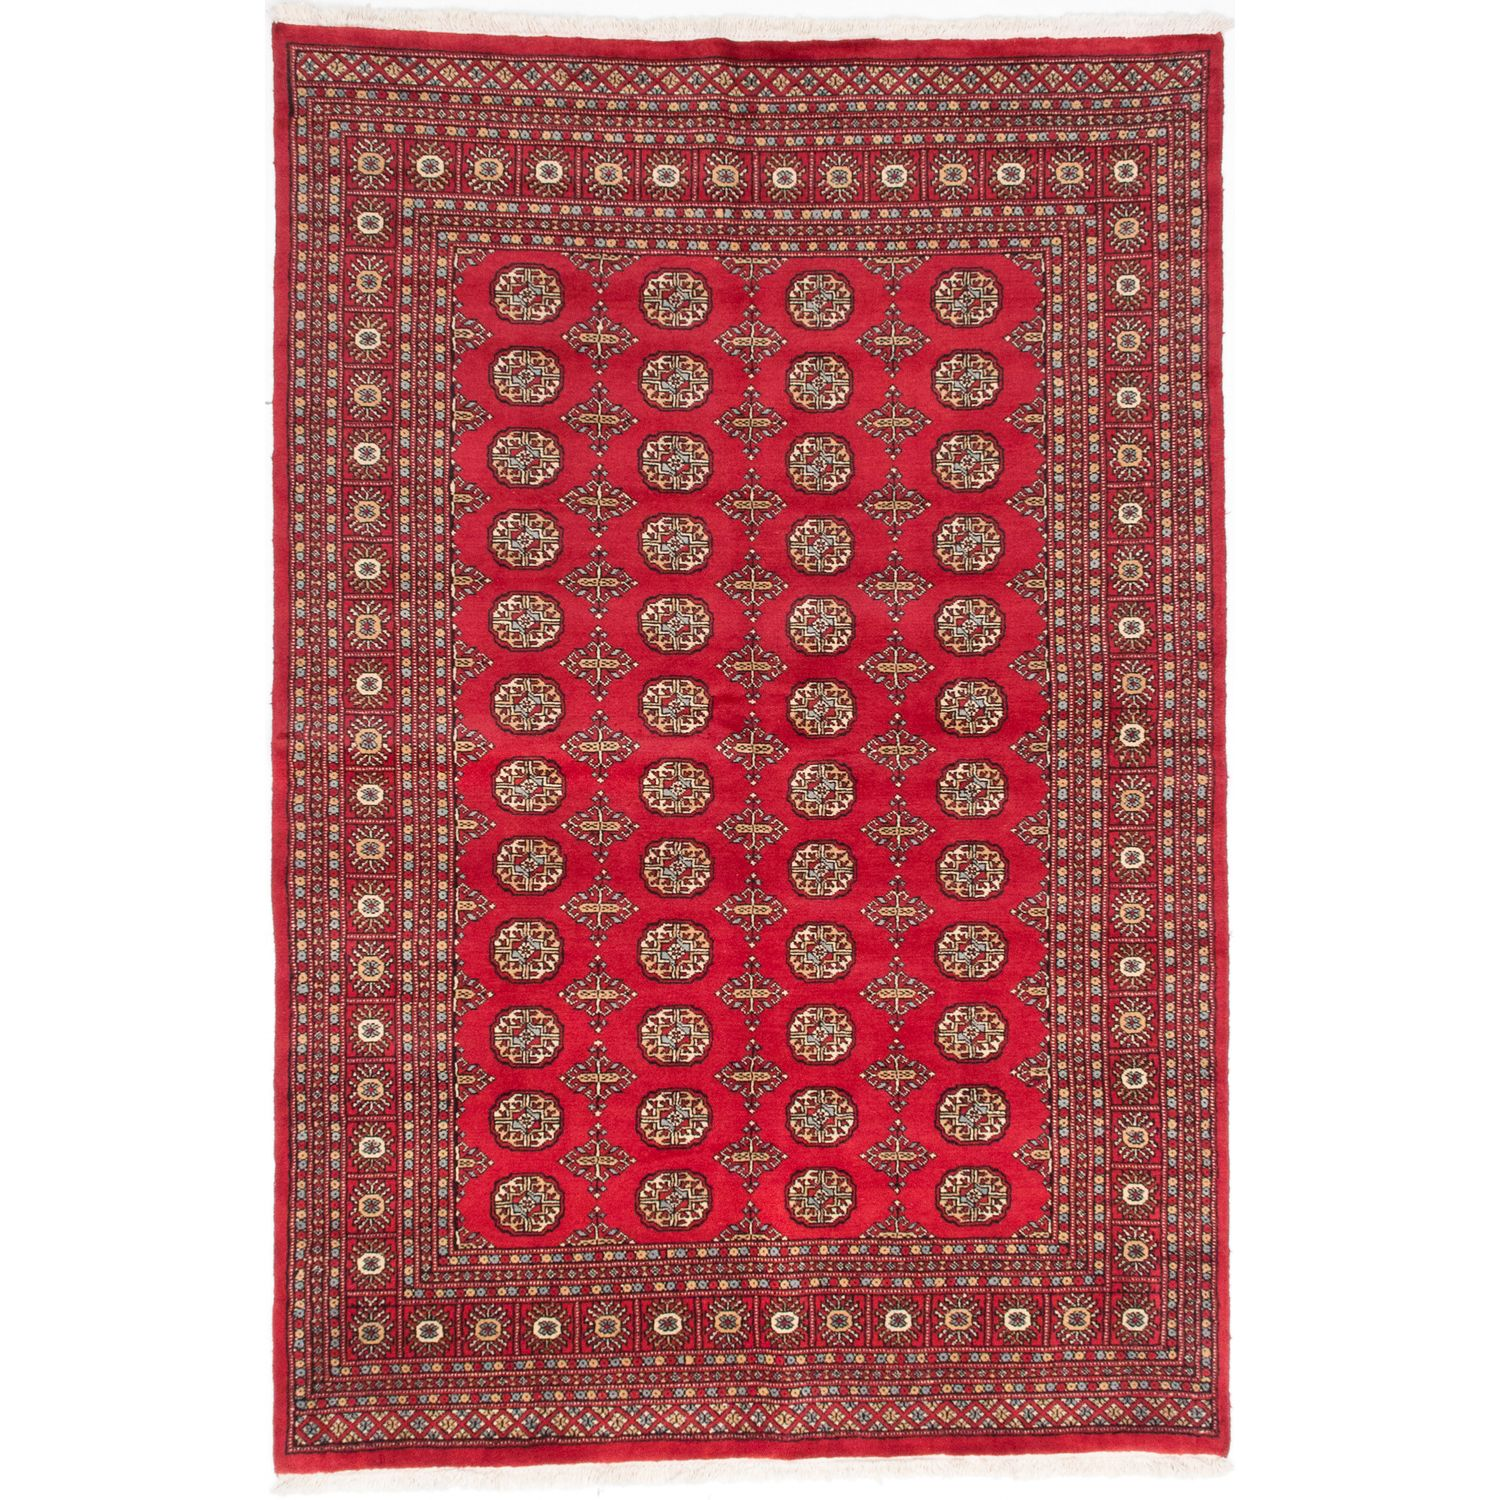 The Largest Online Retailer Of Traditional Handmade Oriental Modern Area Rugs And Carpets Offering High Quality At Affordable Prices In Us